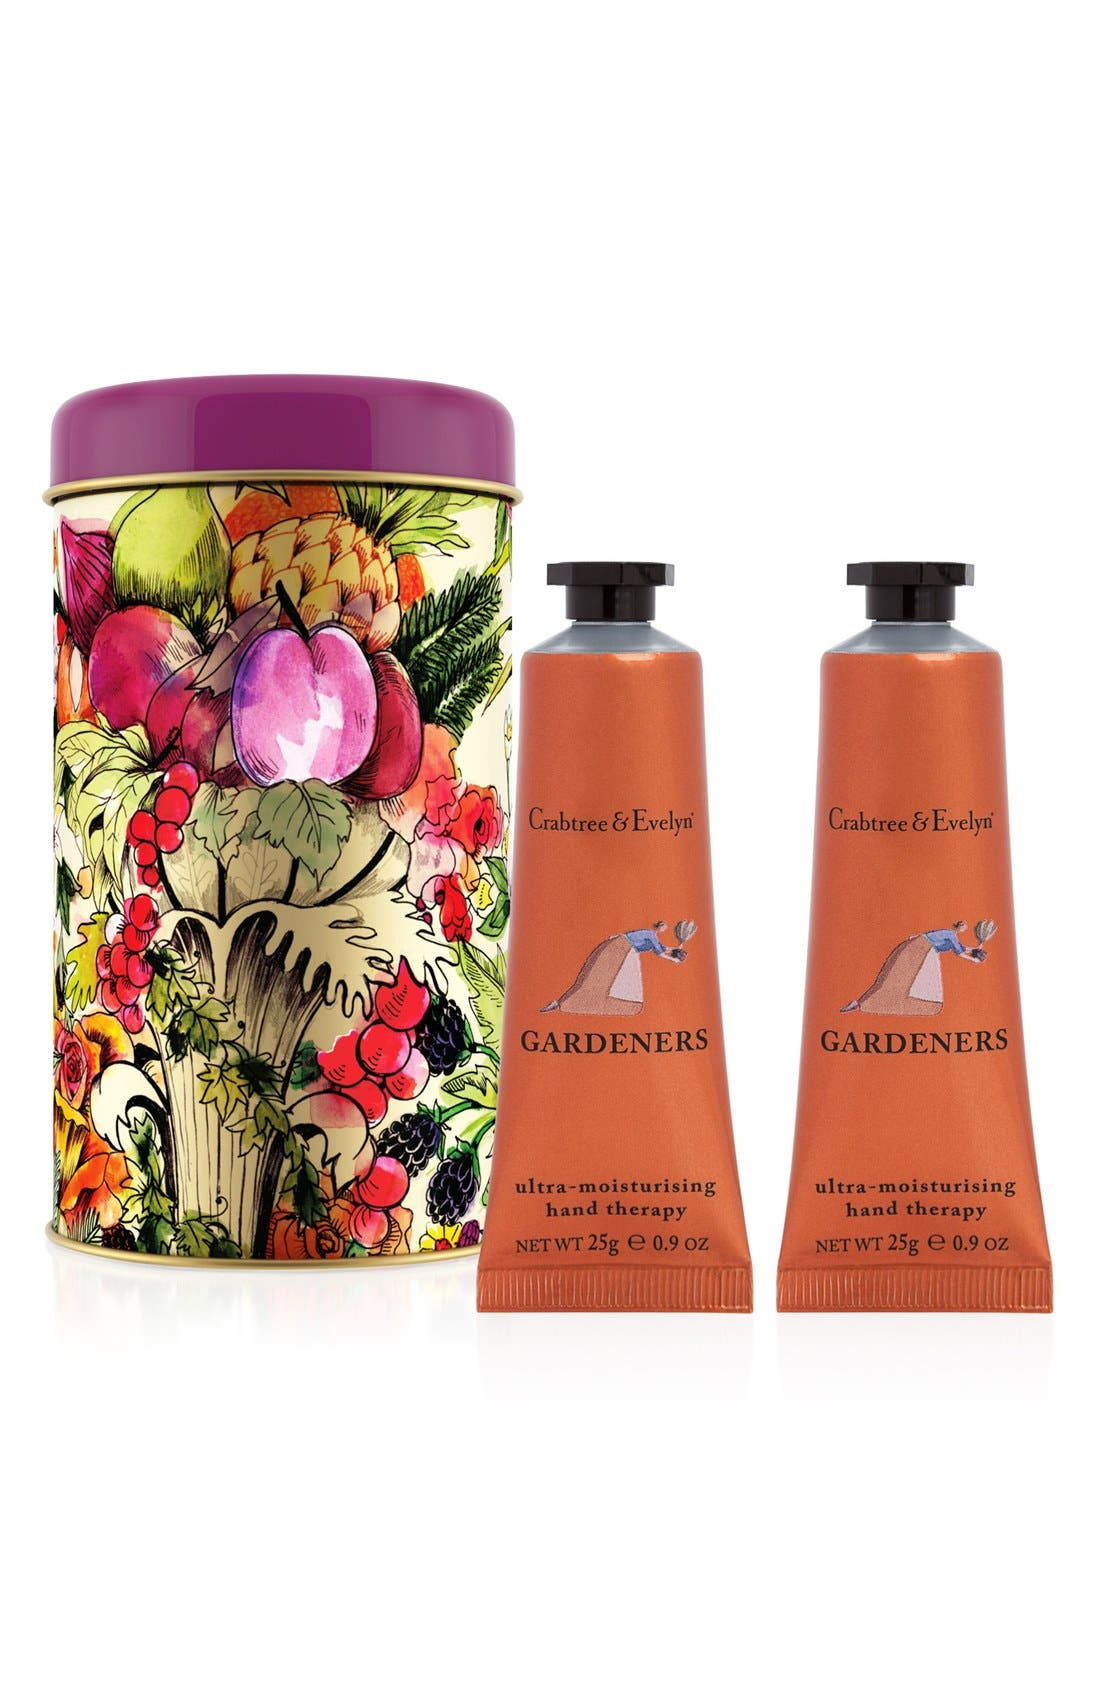 Crabtree & Evelyn Gardener's Ultra-Moisturizing Hand Therapy Duo